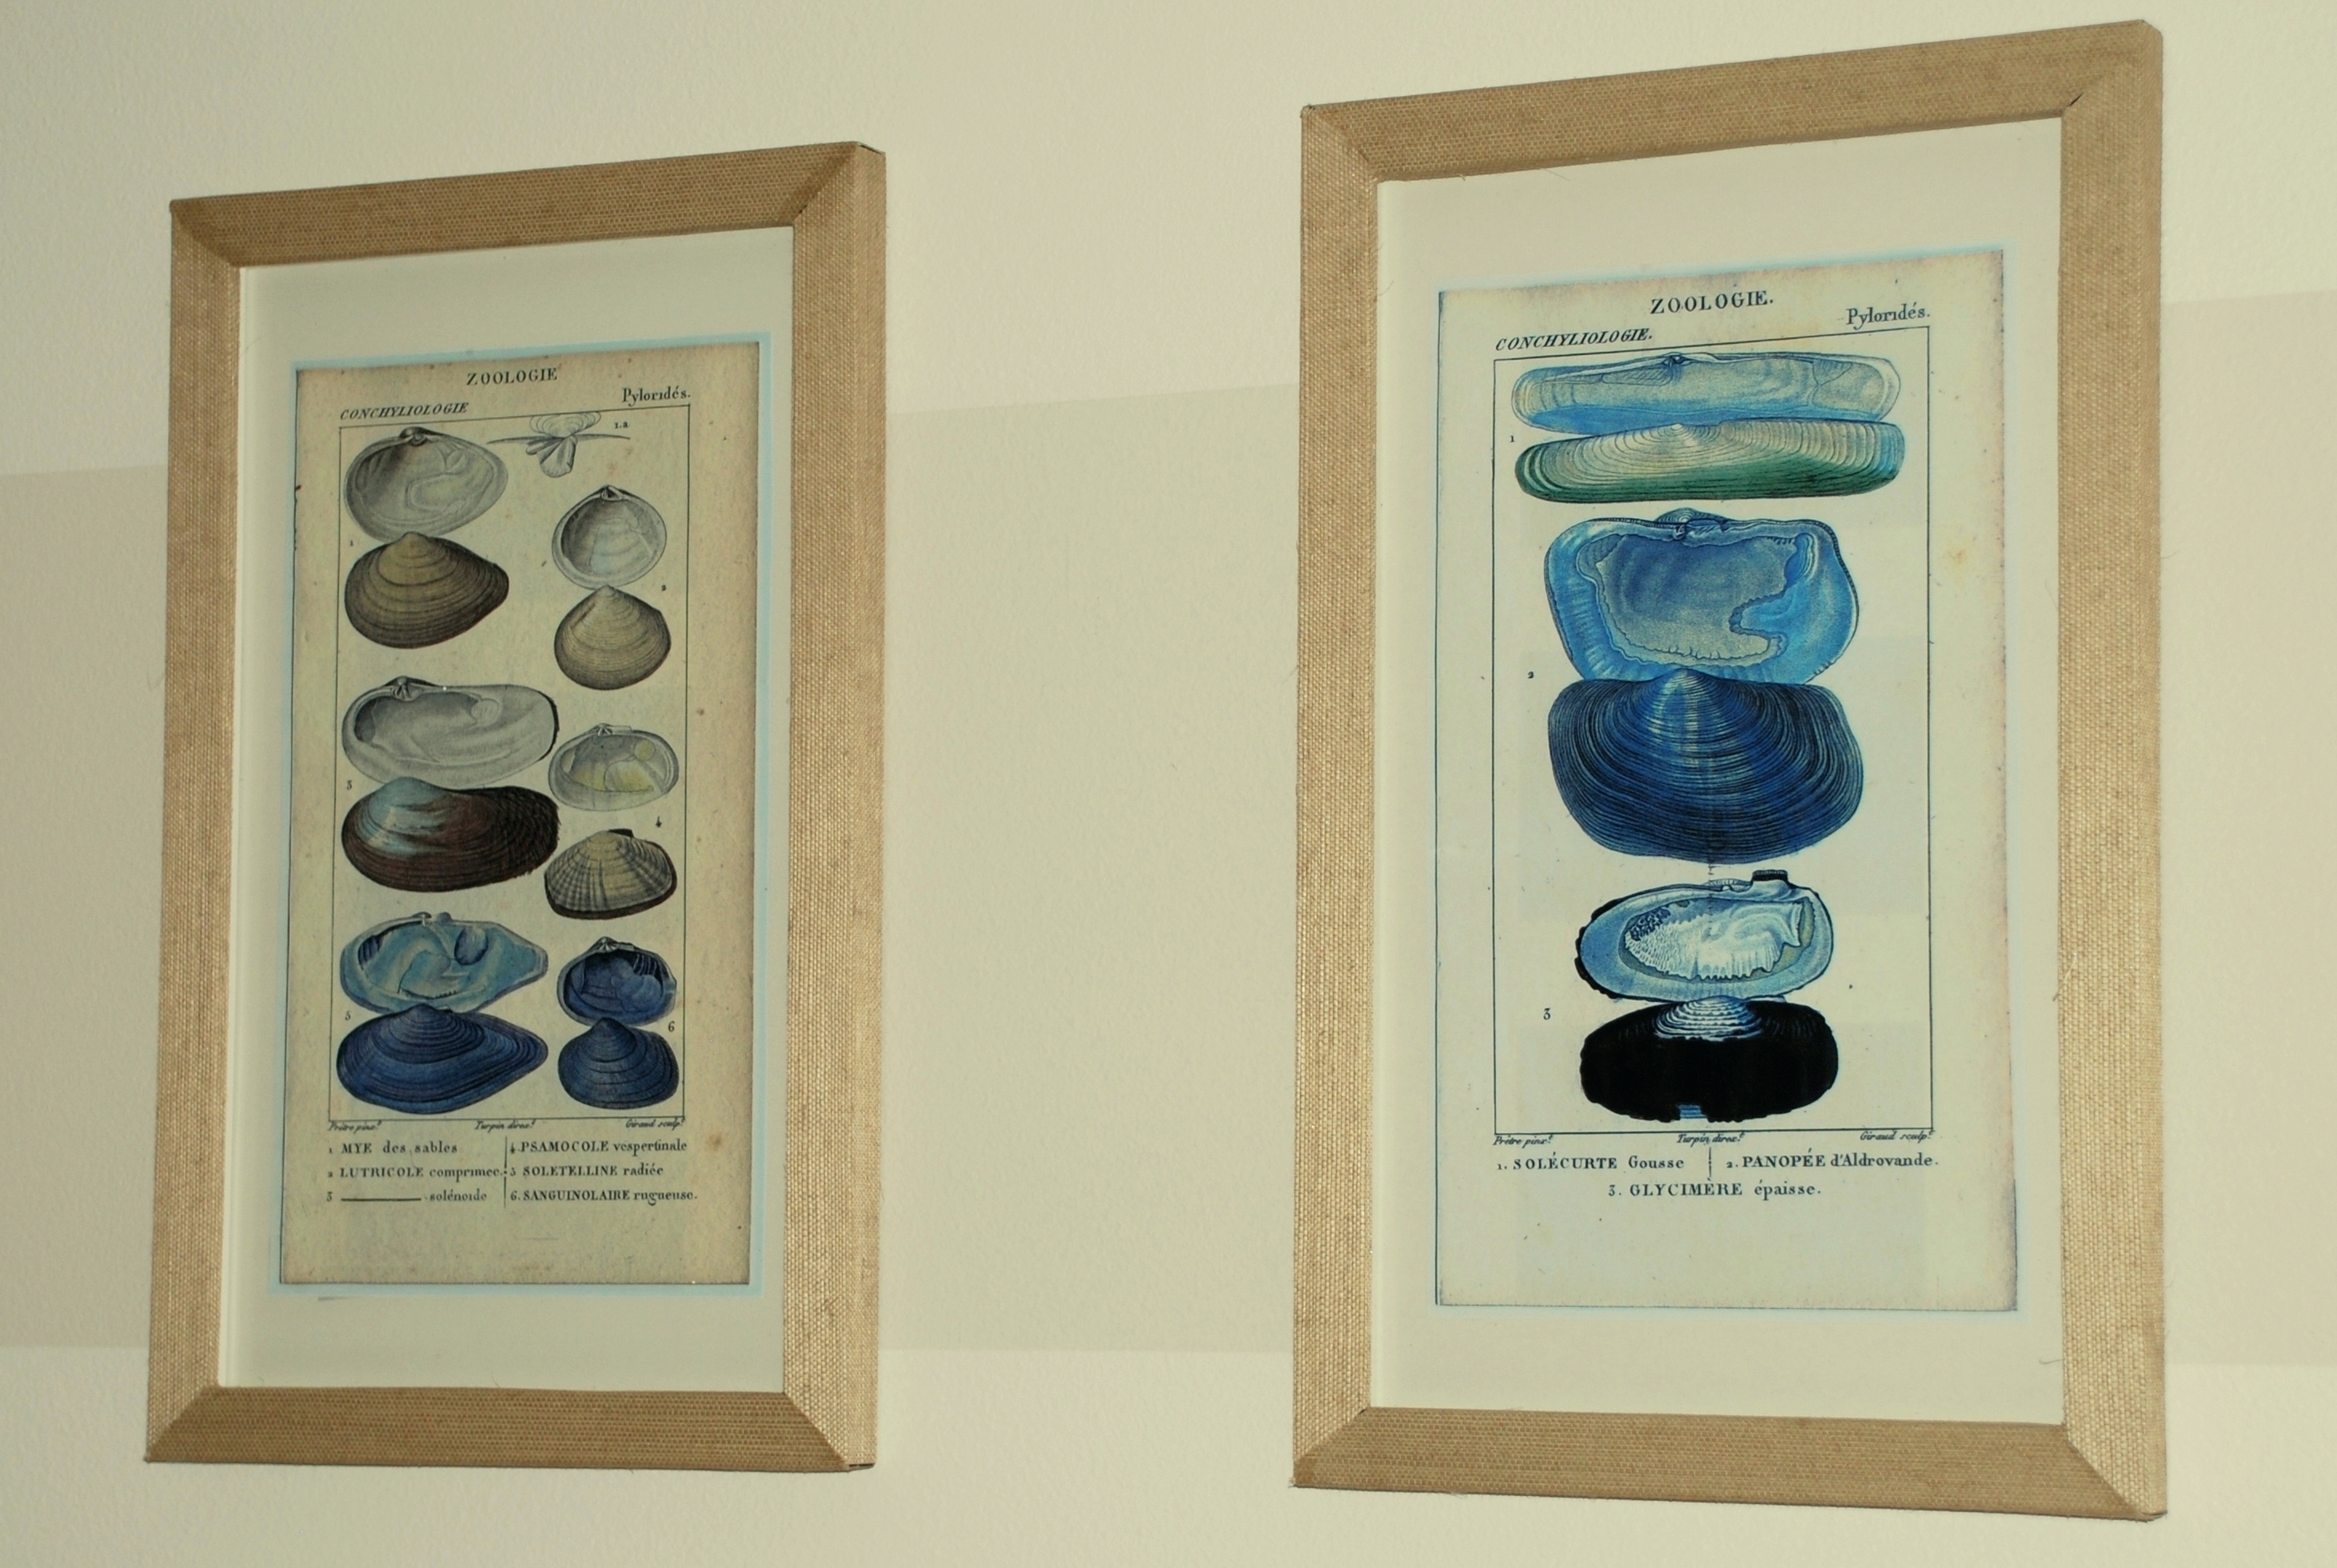 Wall Arts ~ Framed Wall Art Bed Bath And Beyond Framed Wall Art With Regard To Recent Vintage Bath Framed Art Prints Set Of 3 (Gallery 7 of 15)